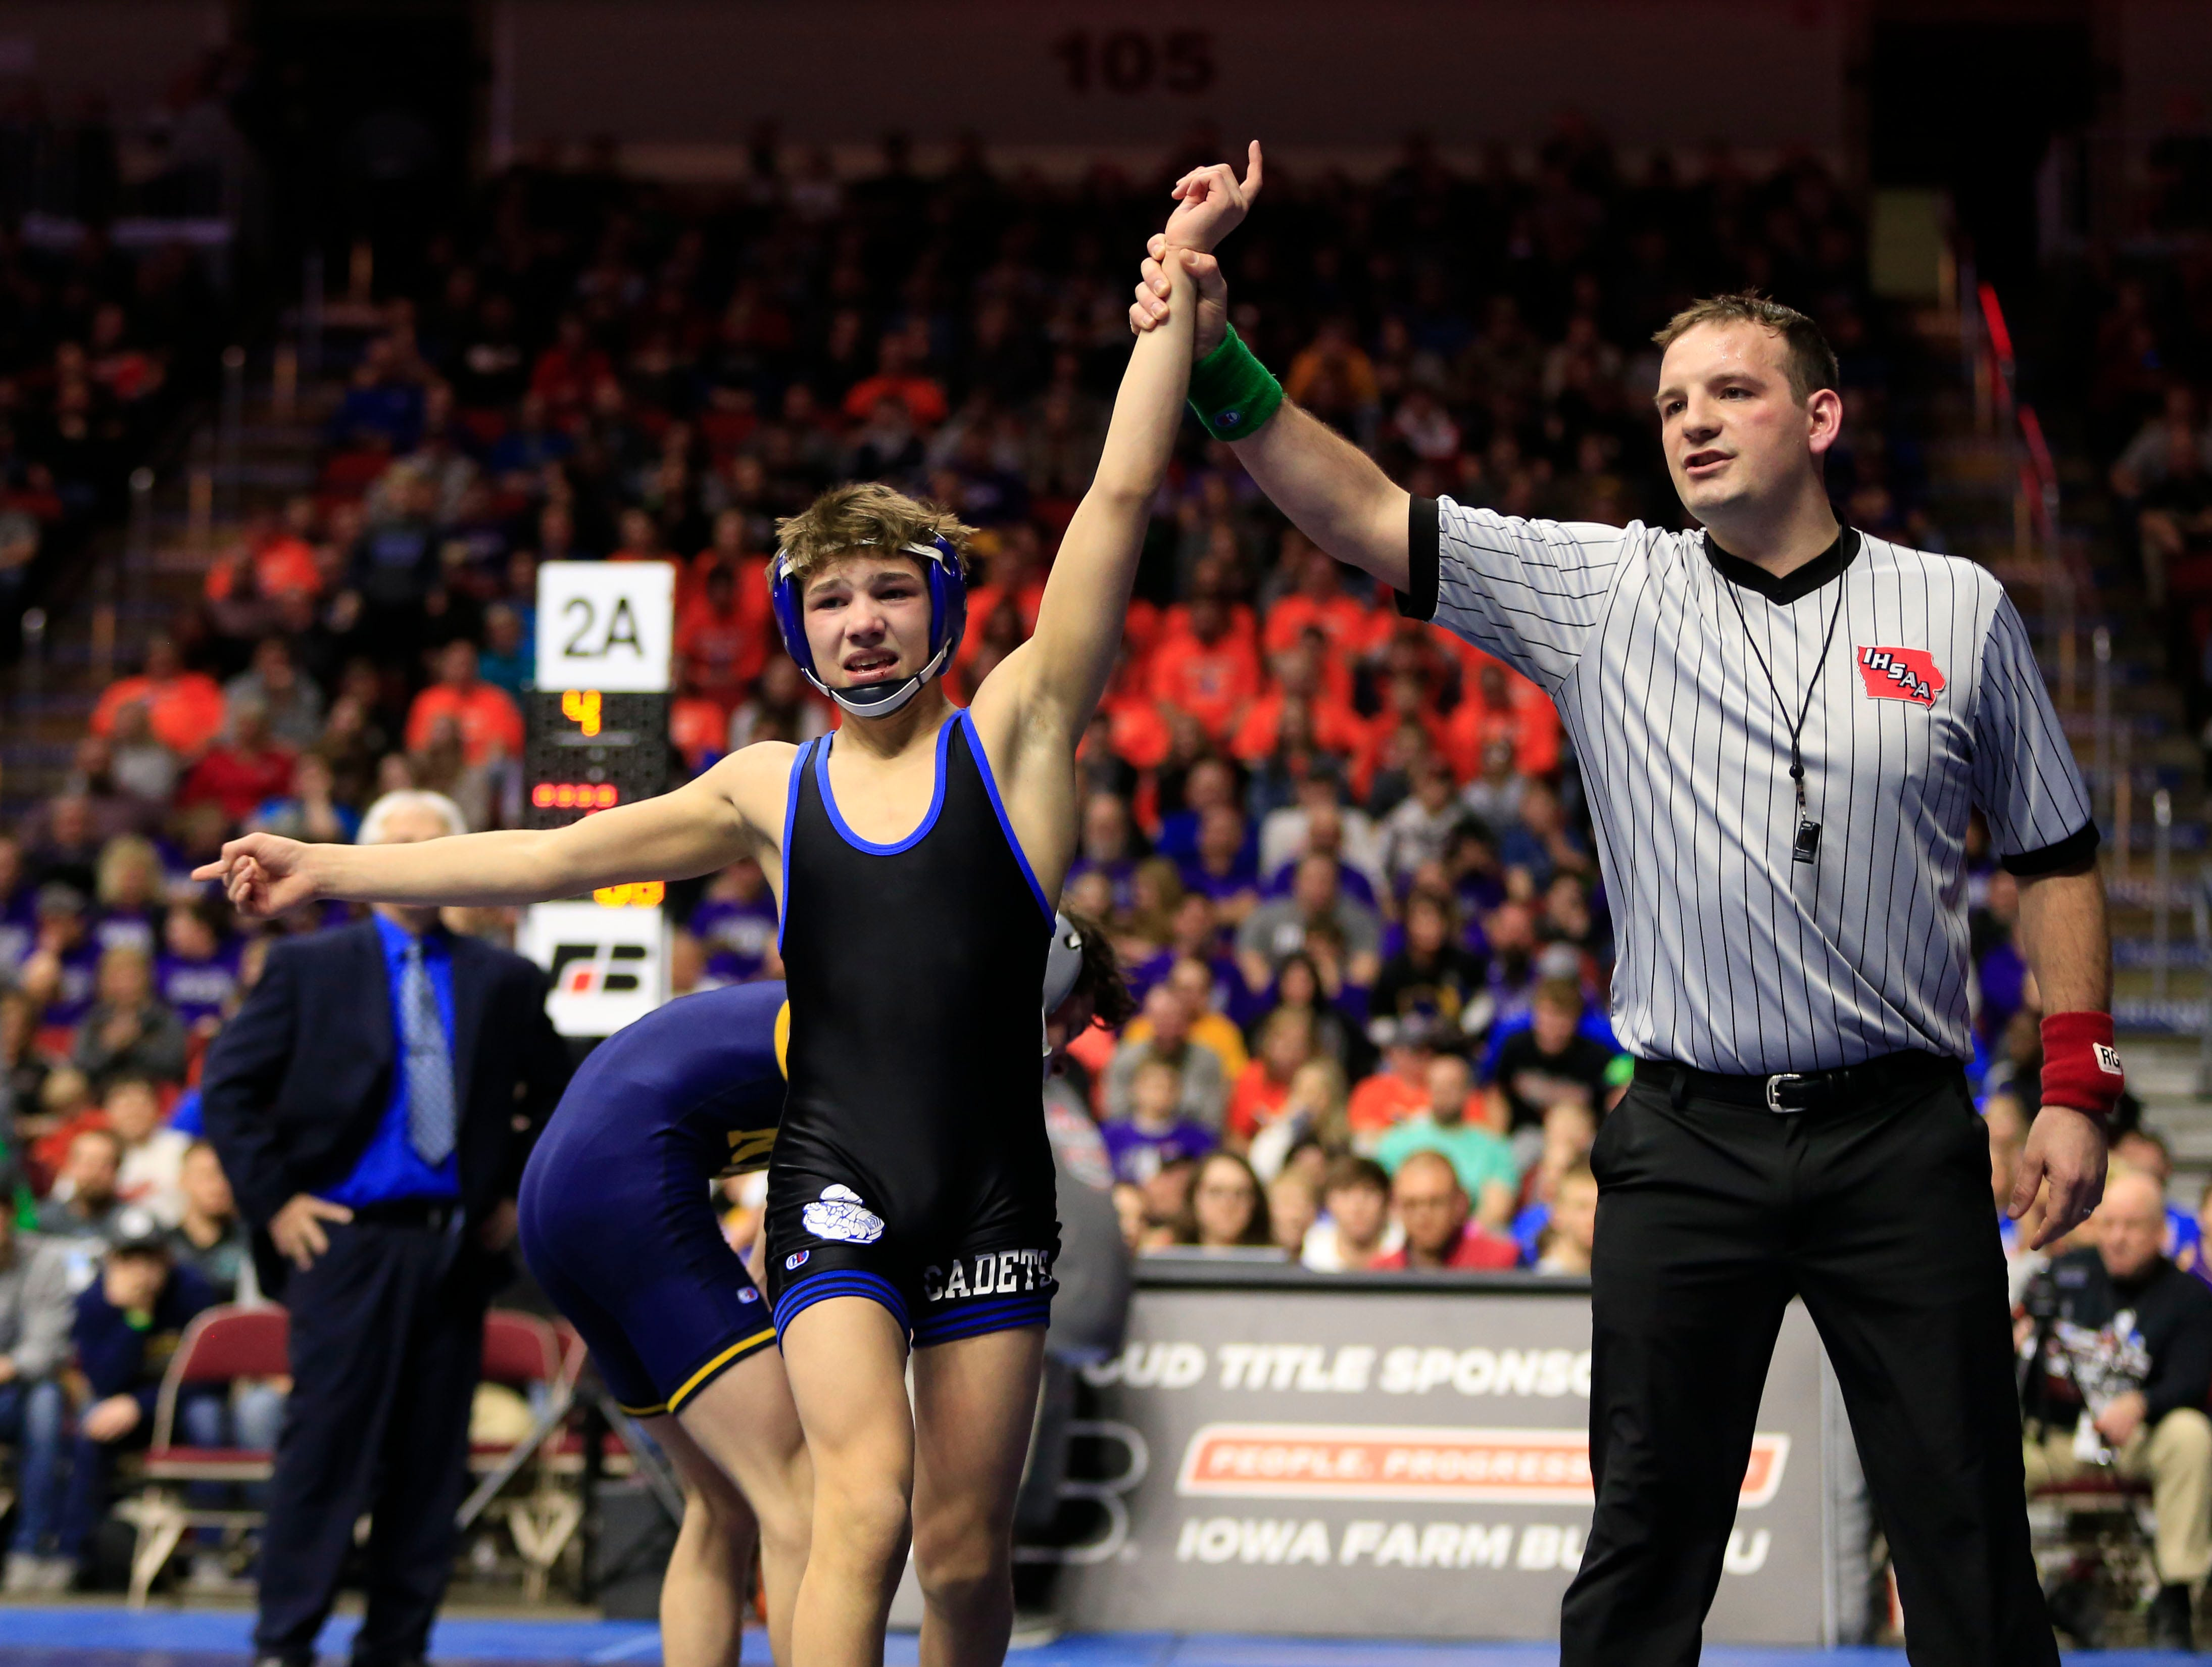 Carter Fousek of Crestwood, Cresco beats Blaine Frazier of Notre Dame, Burlington for the 2A state championship at 106 pounds Saturday, Feb. 16, 2019.